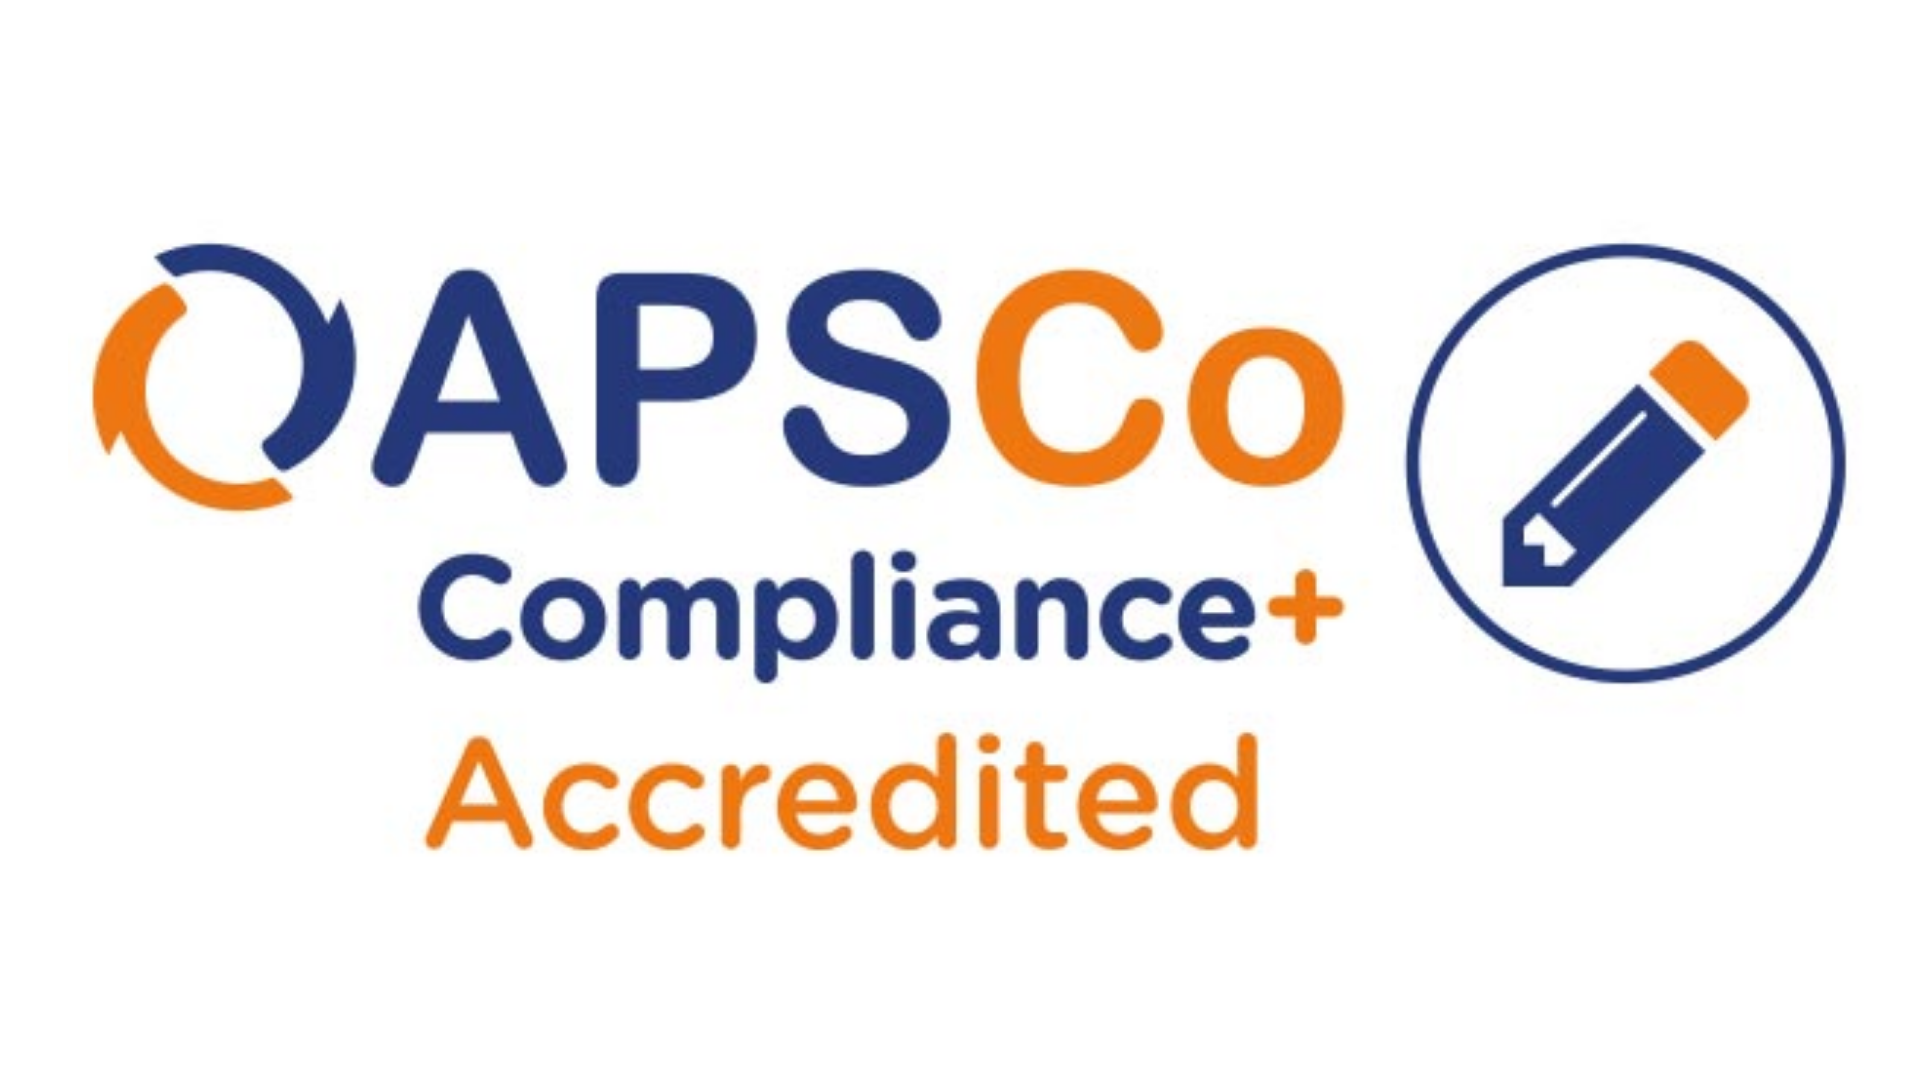 Smile Education are an APSCo Compliance+ accredited supply teaching agency based in the West Midlands.